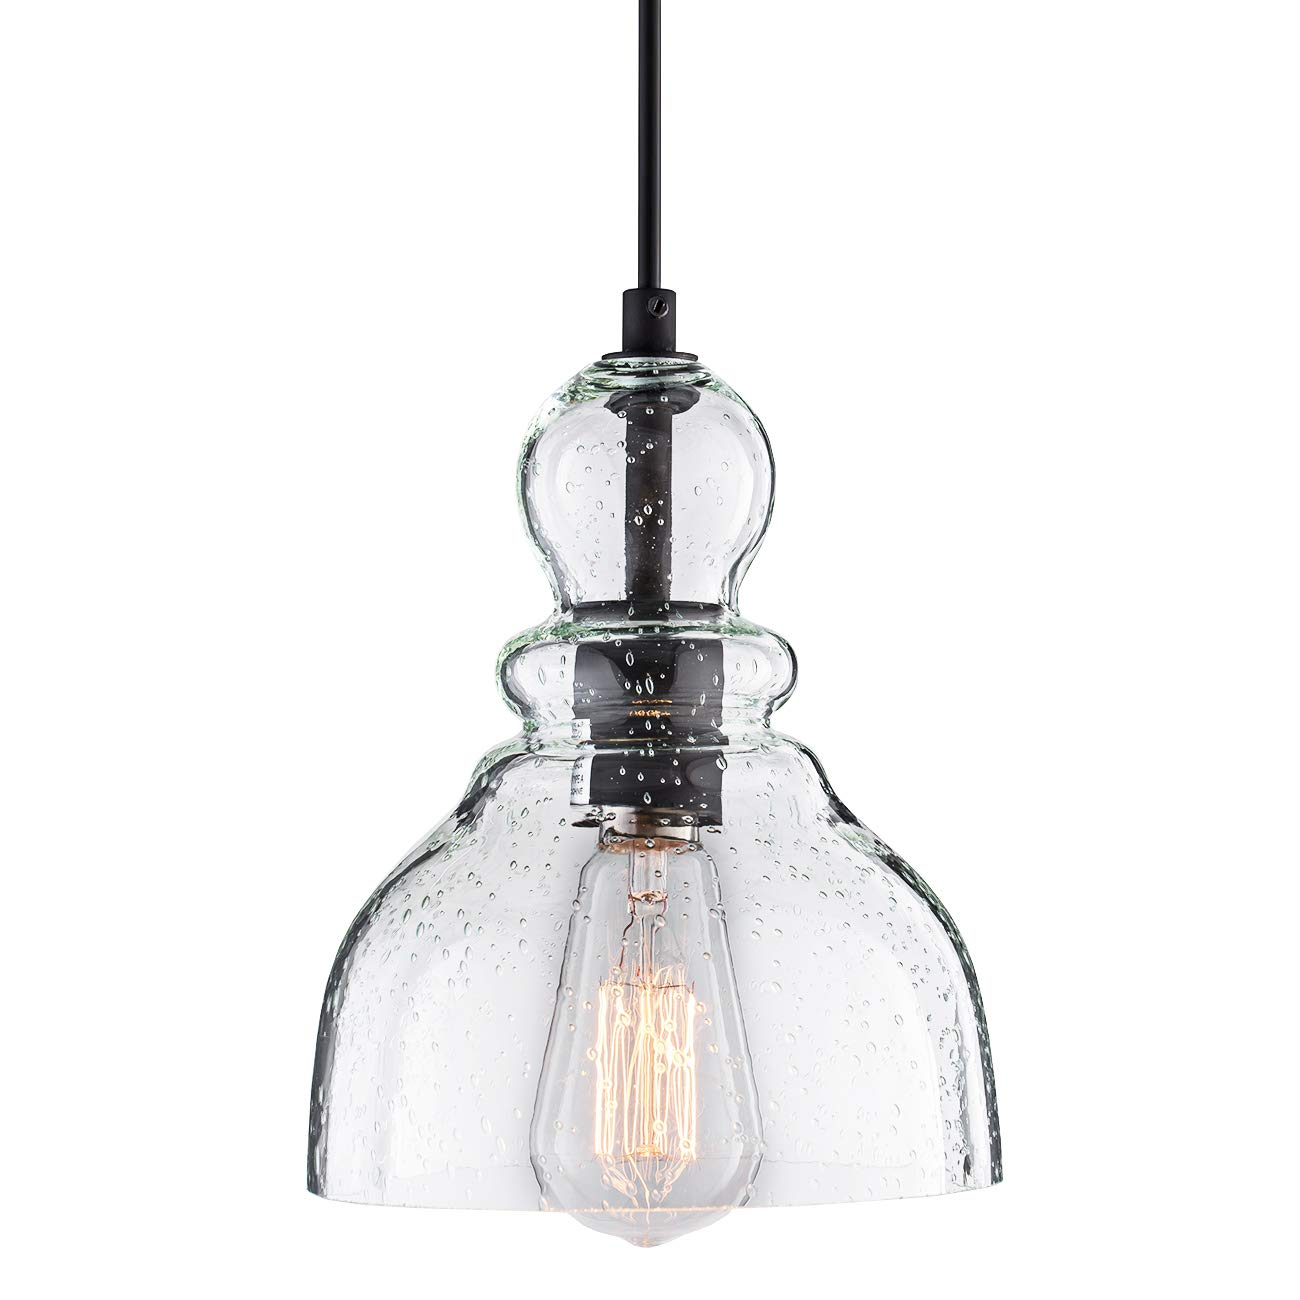 Donglaimei Industrial Mini Pendant Lighting with Handblown Clear Seeded Glass Shade, Adjustable Edison Farmhouse Kitchen Lamp for Kitchen Island, Restaurants, Hotels and Shops, 1-Pack